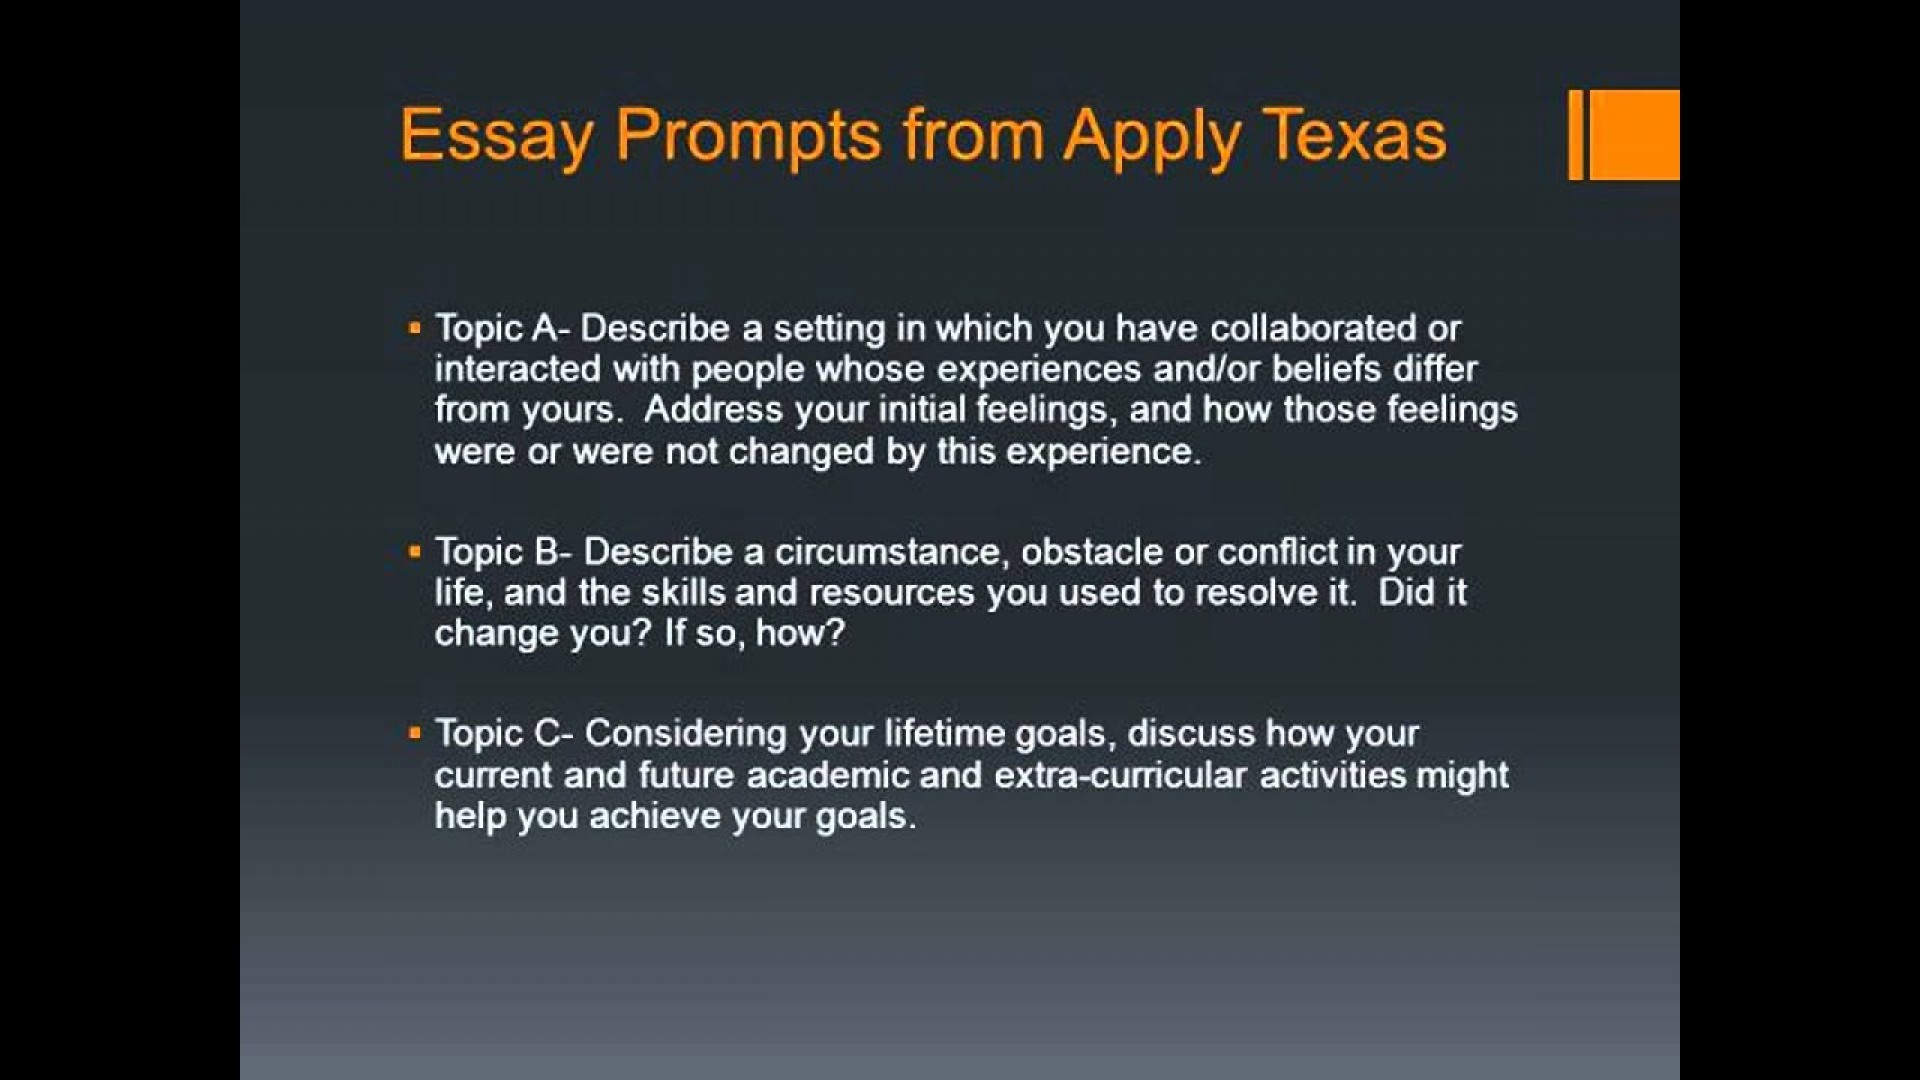 014 Apply Texas Essay Examples Example Surprising A College C 2017 Prompt 1920